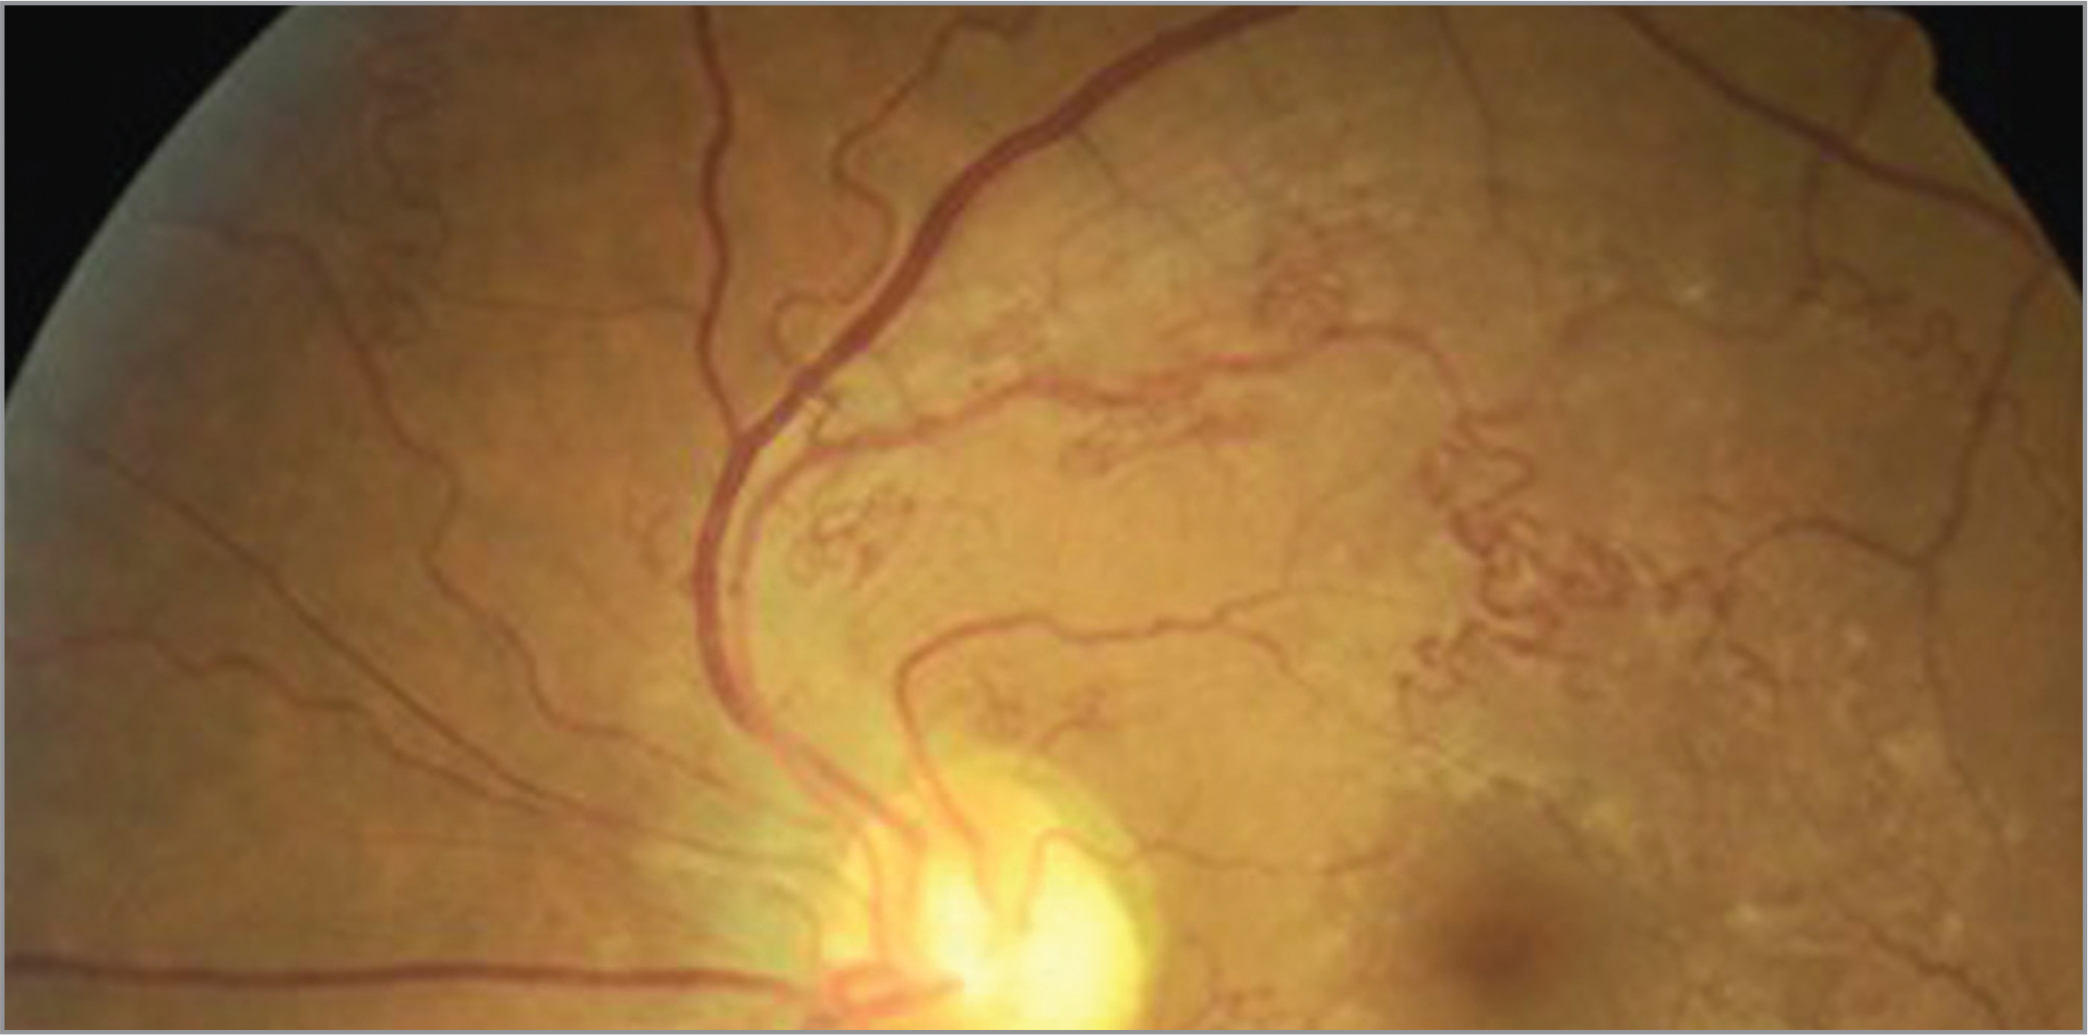 Fundus photographs of the right (A) and left eye (B) showed bilateral pronounced tortuosity of the second- and third-order arterioles in the macular and peripapillary region with situs inversus of the optic disc in the left eye (B).